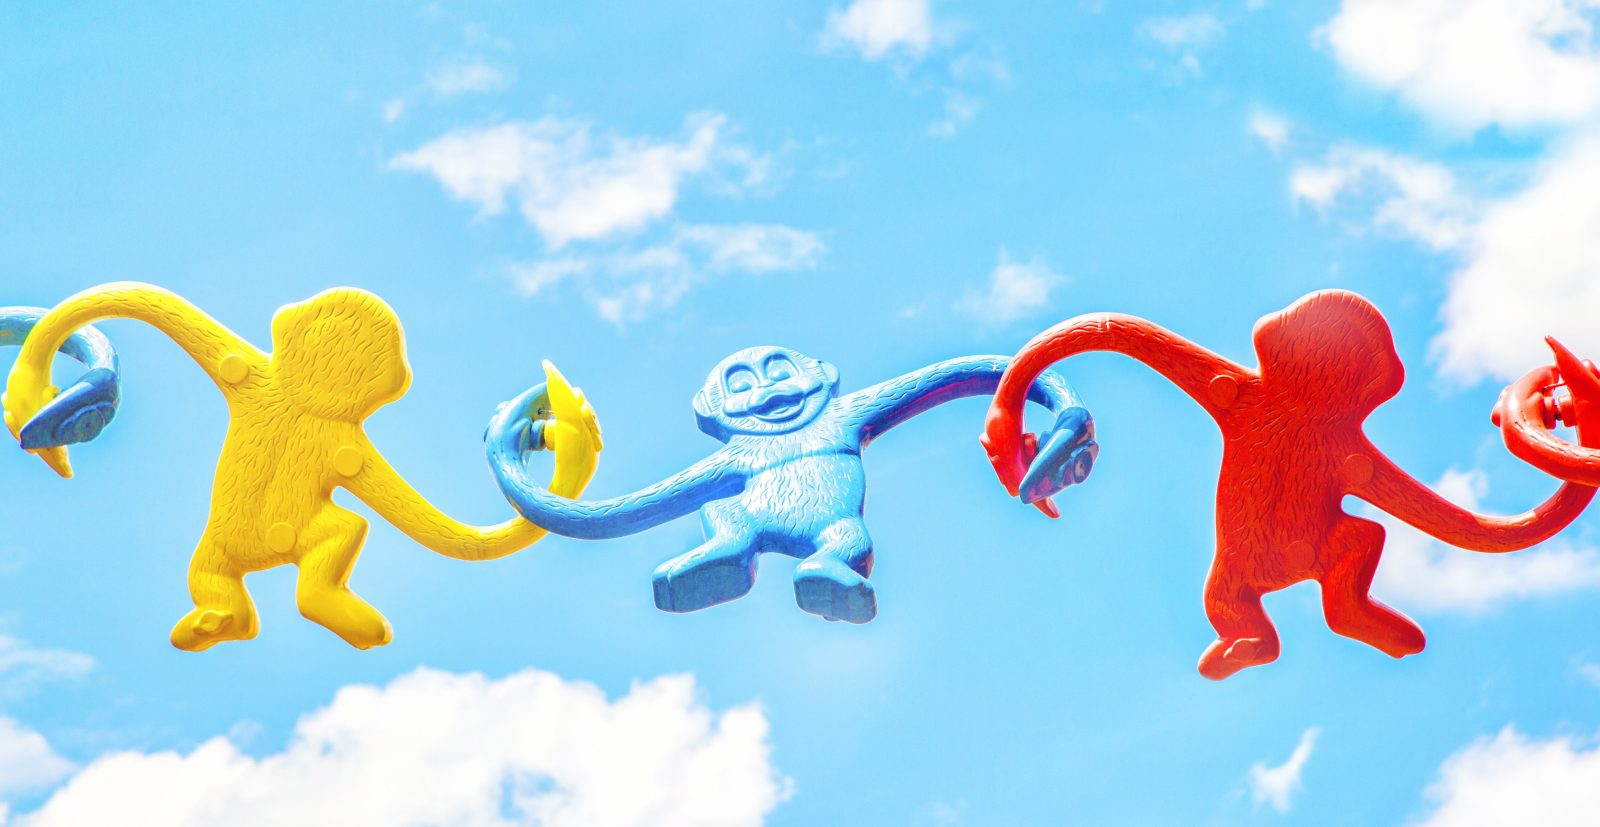 yellow, blue and red plastic monkeys holding hands across a blue sky